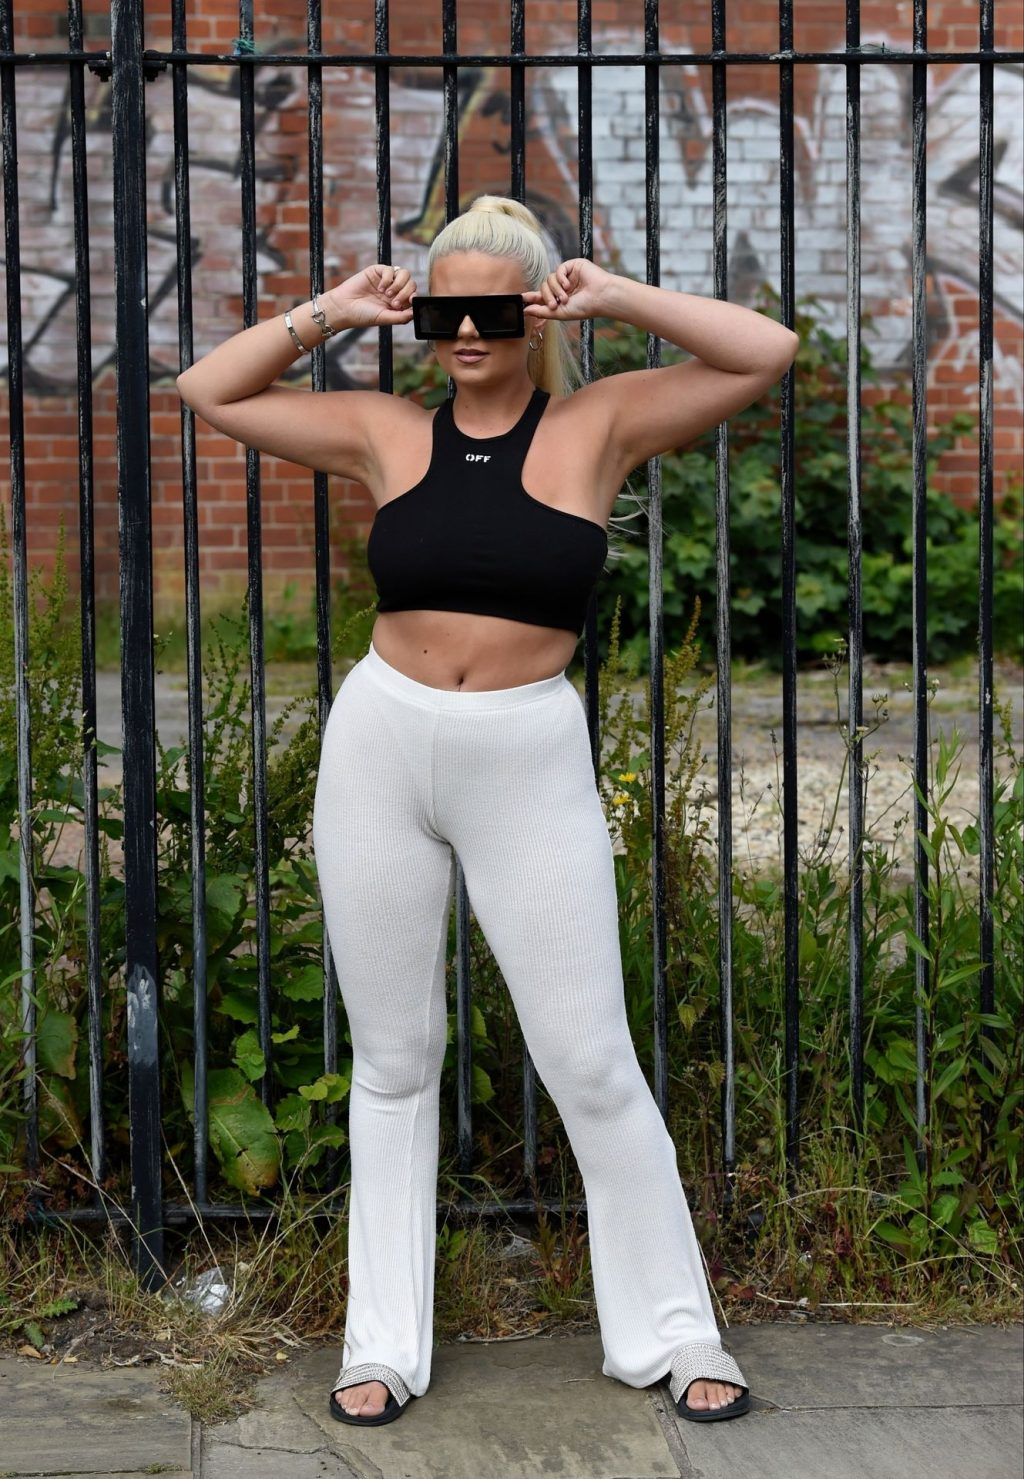 Apollonia Llewellyn Shows Her Pokies in Manchester (69 Photos)